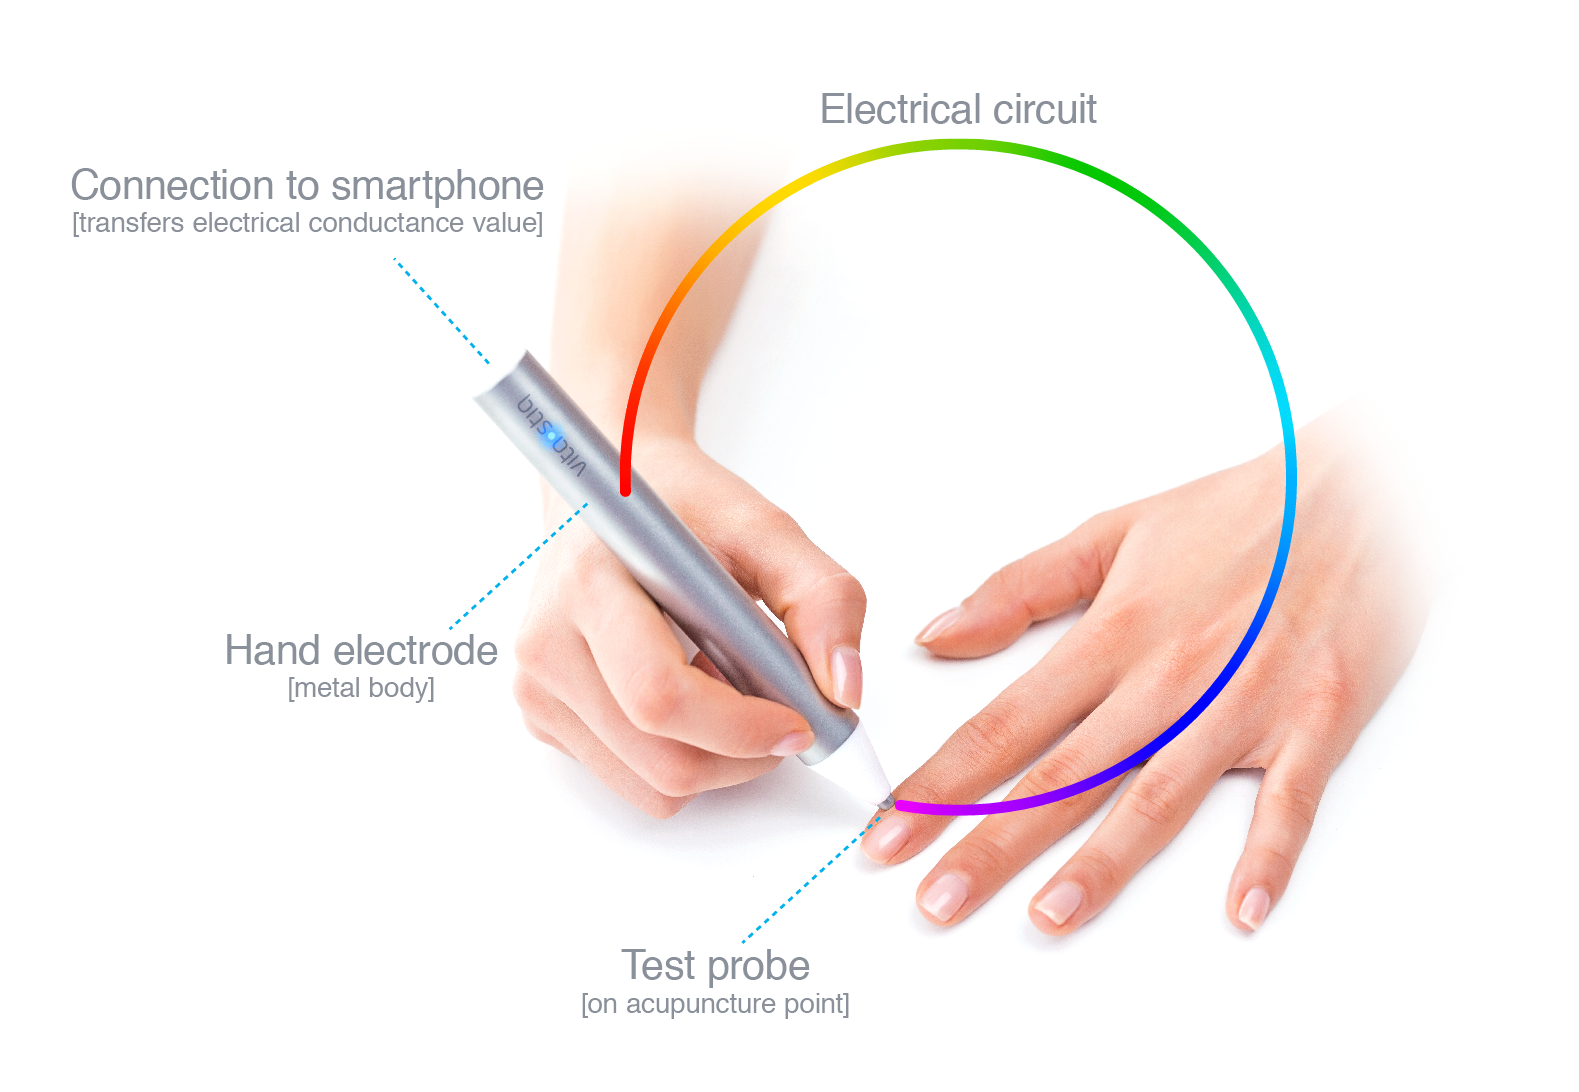 Vitastiq A Smart Device For Vital Advice Indiegogo Electrical Circuit Dummies Body Measuring Points